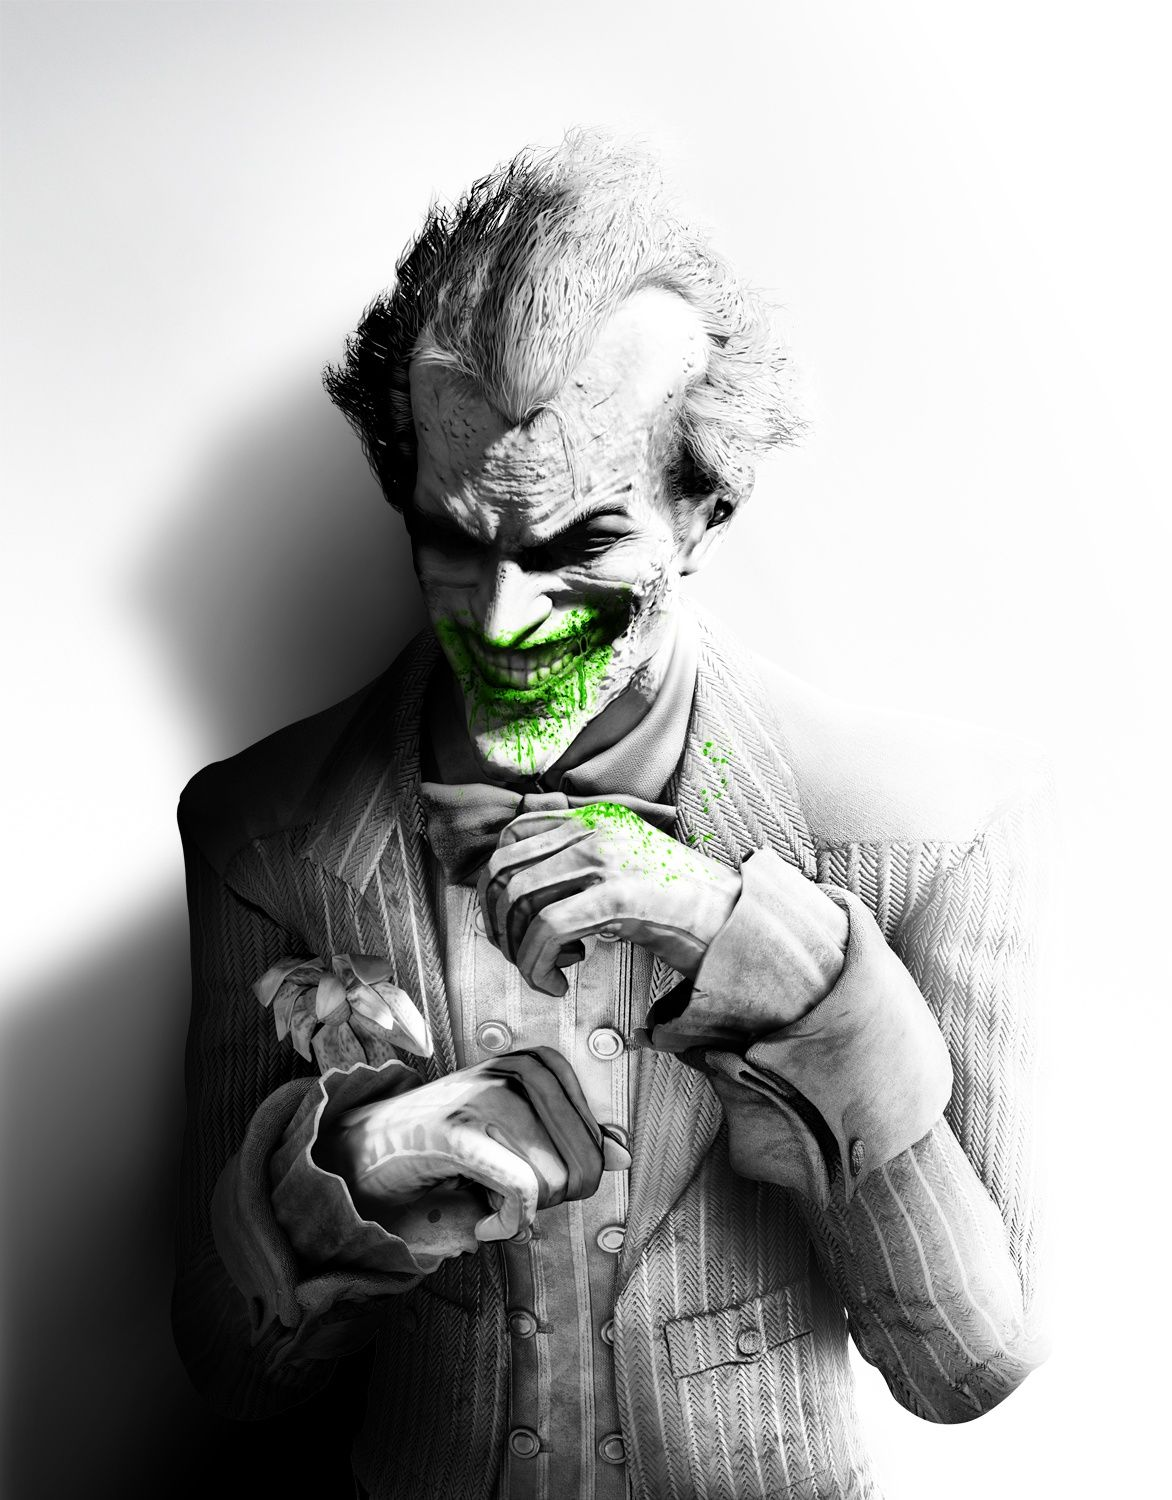 The Joker Was Amazing In The Arkham Games Mark Hamill Has Been